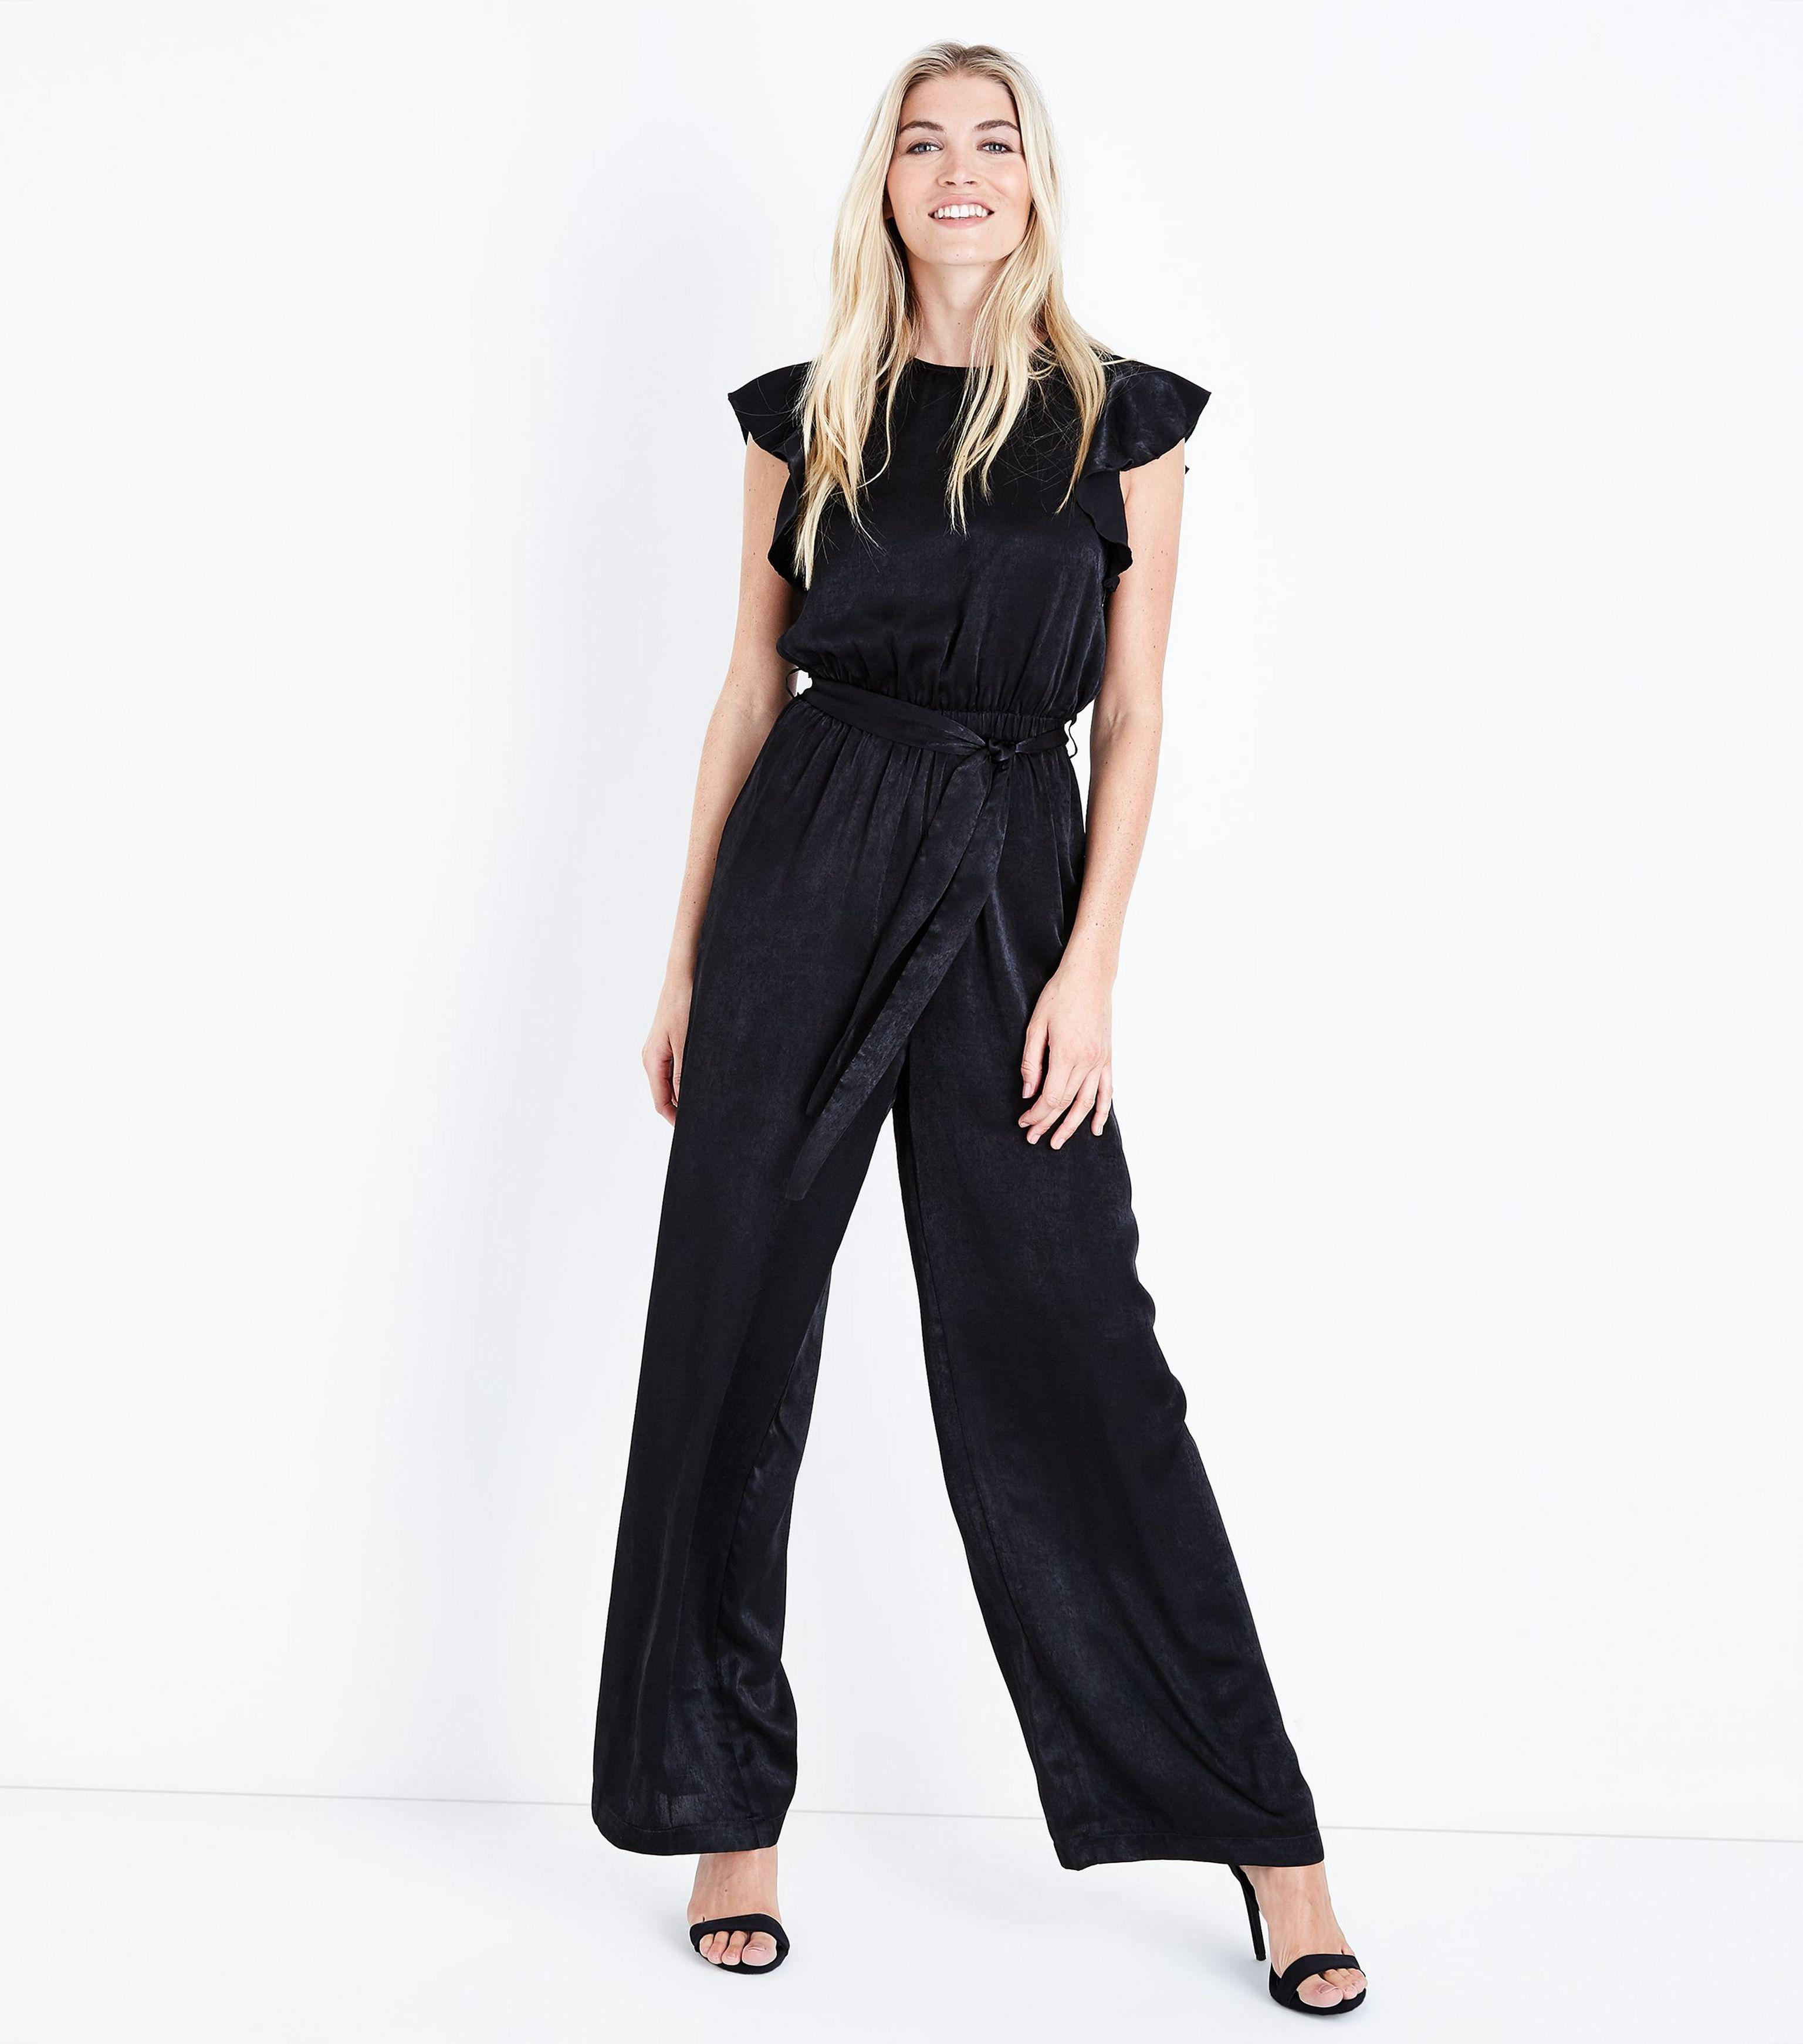 a80fd893369 Mela Black Frill Sleeve Jumpsuit in Black - Lyst